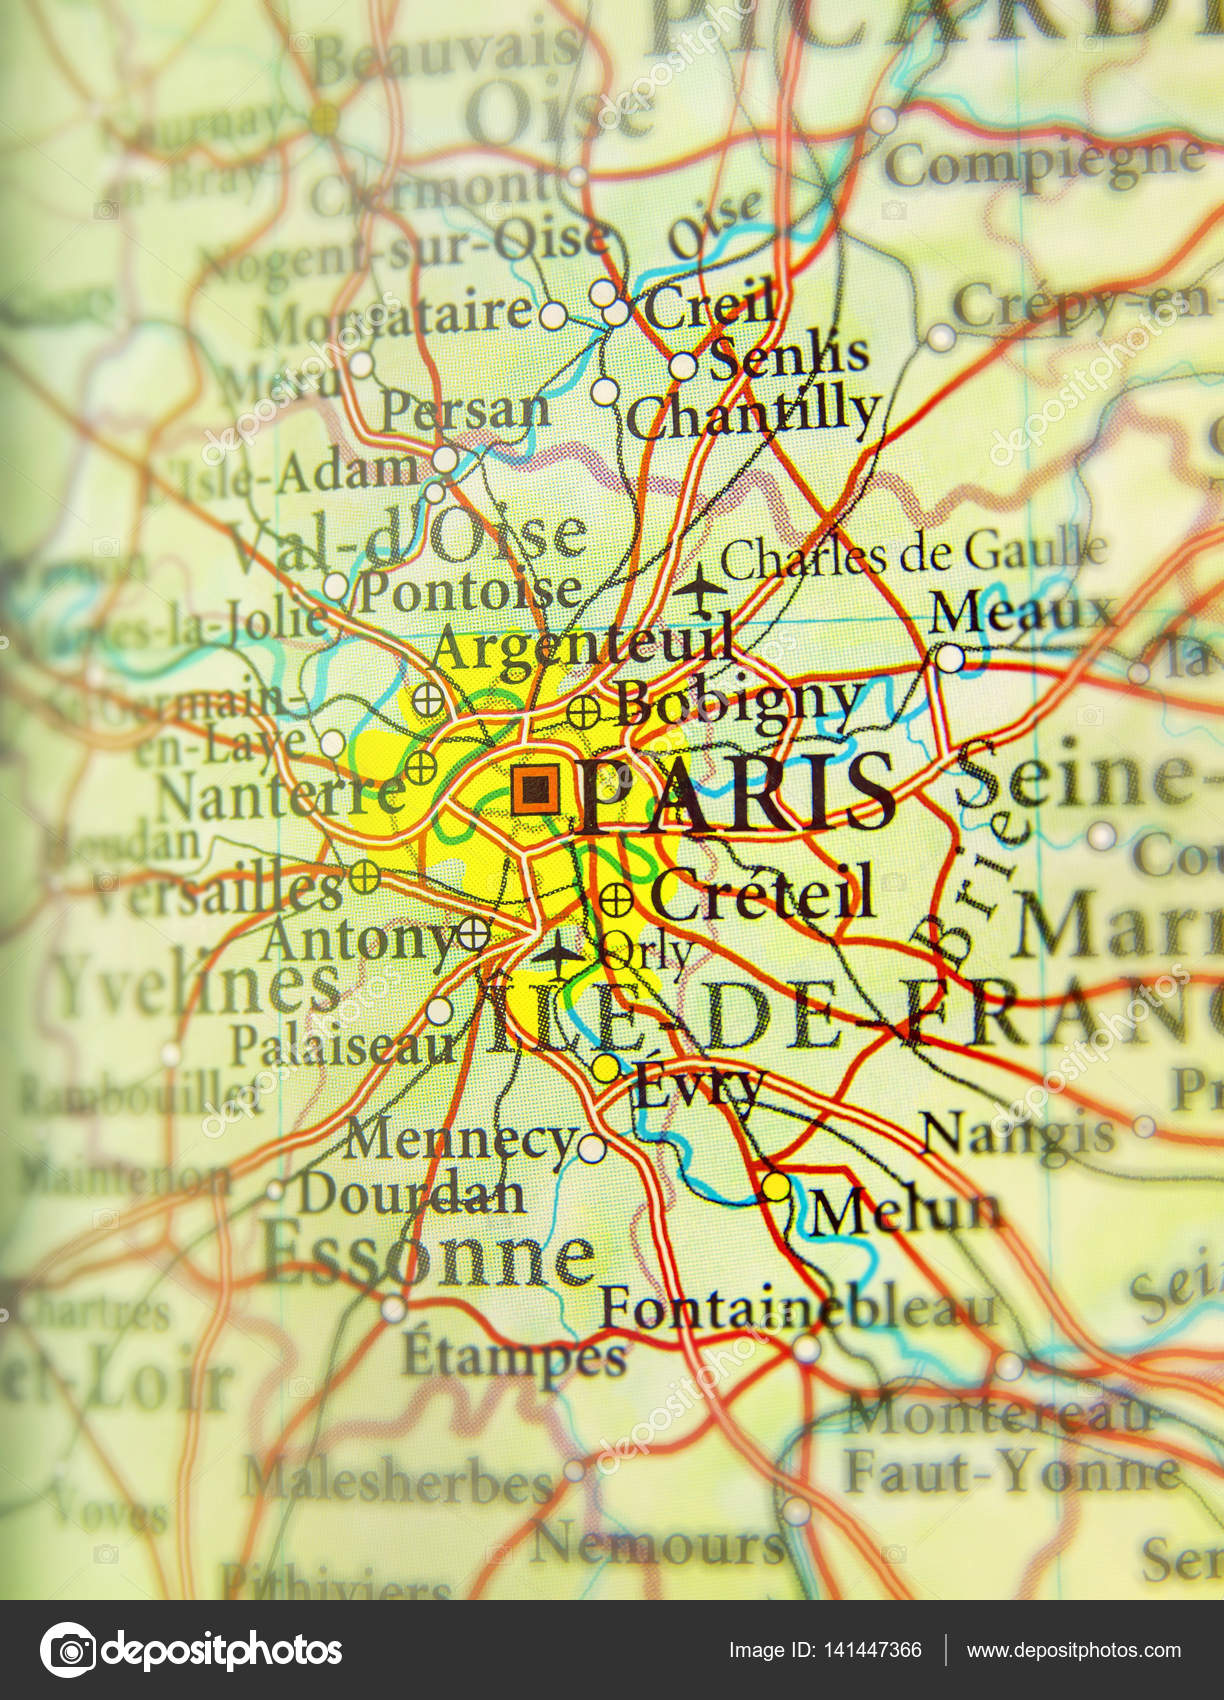 Picture of: Geographic Map Of European Country France With Paris Capital Cit Stock Photo C Bennian 141447366